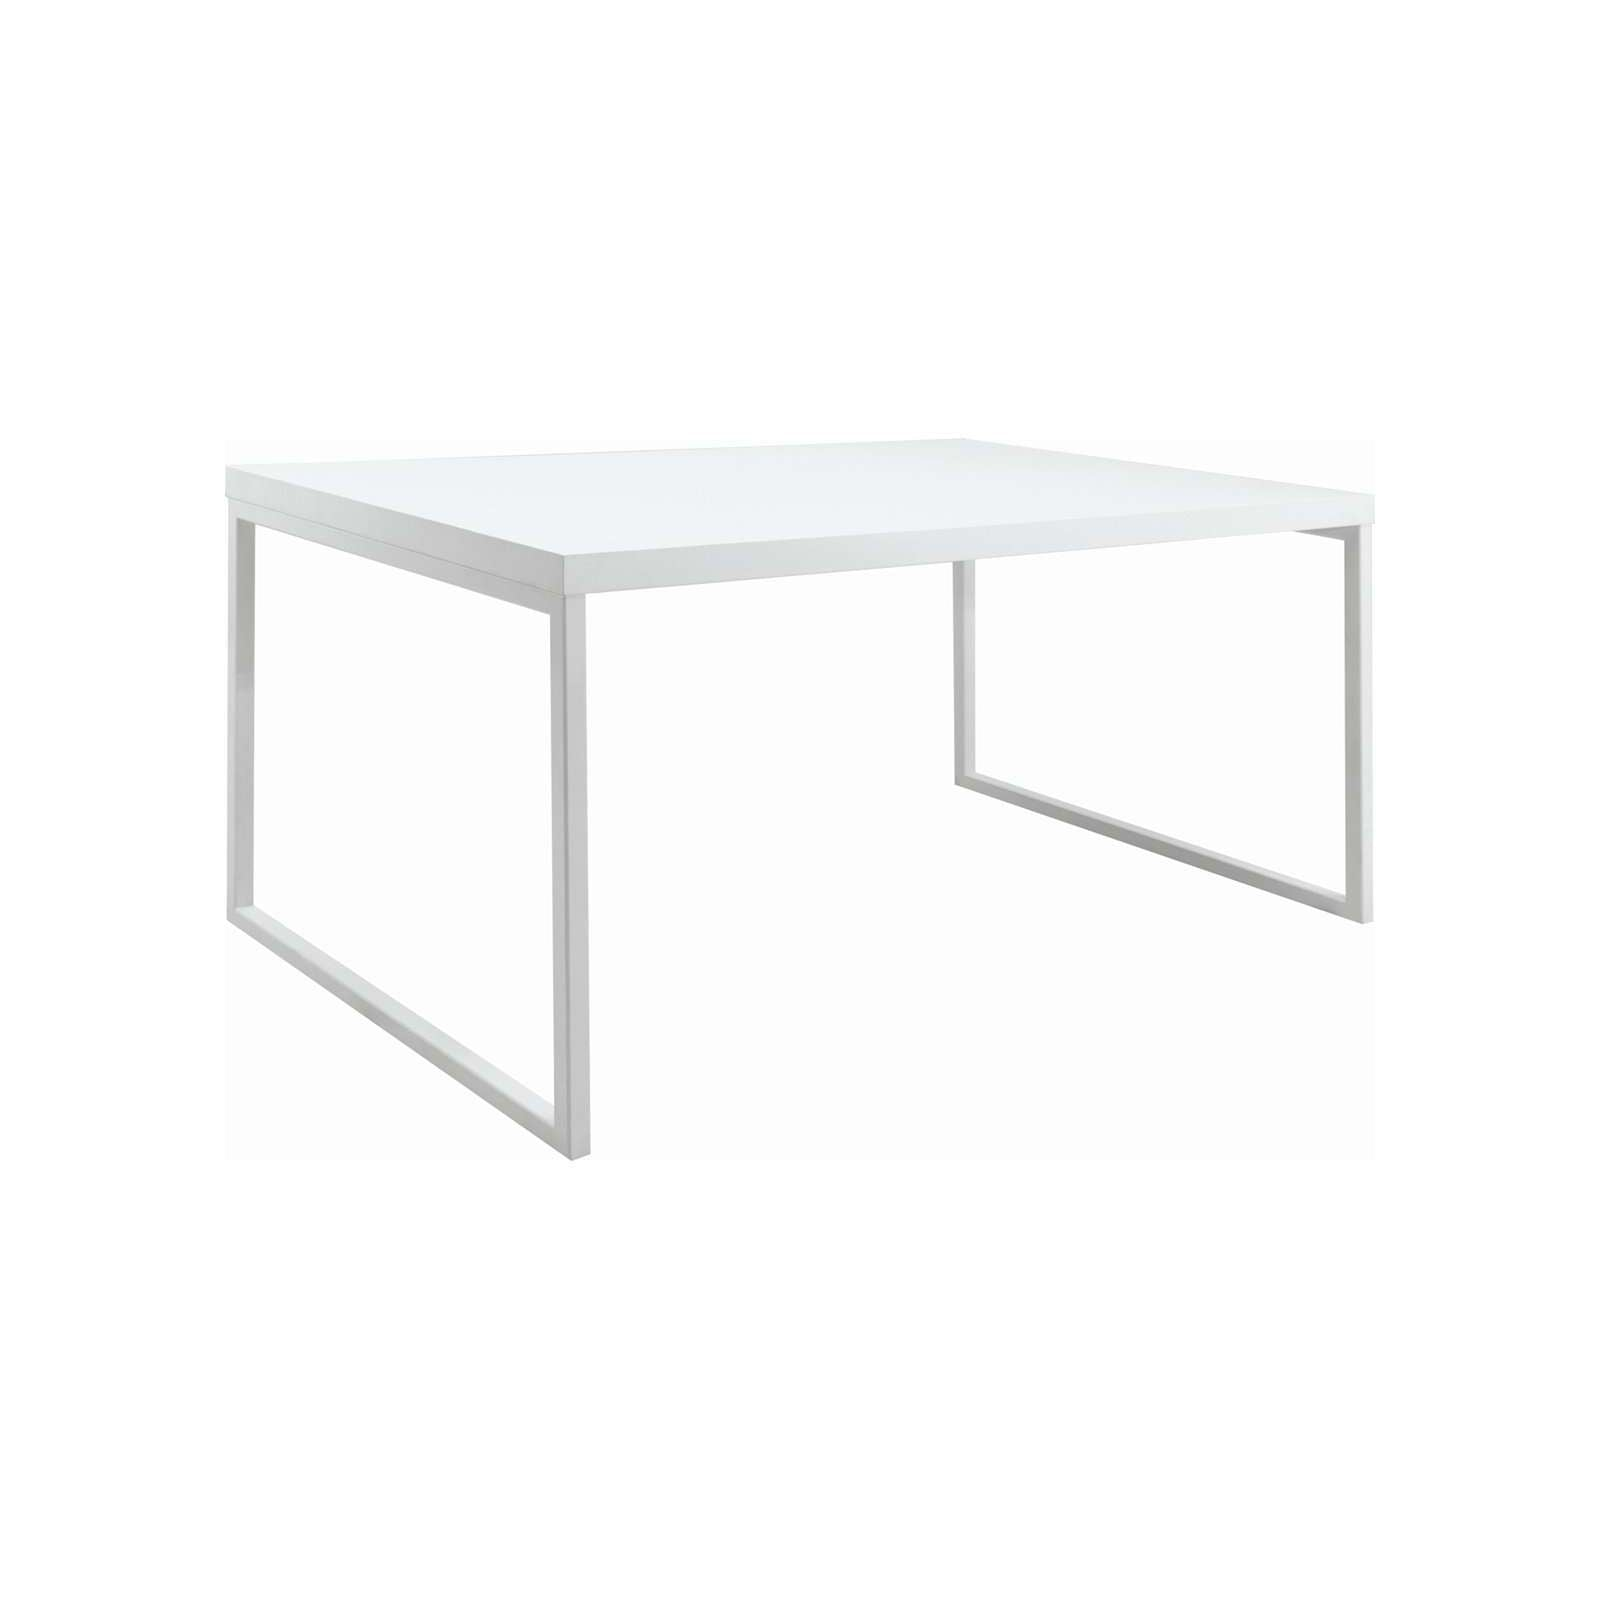 BRENT 1.5m Table in White Lacquered with Matt White Epoxy Metal Leg